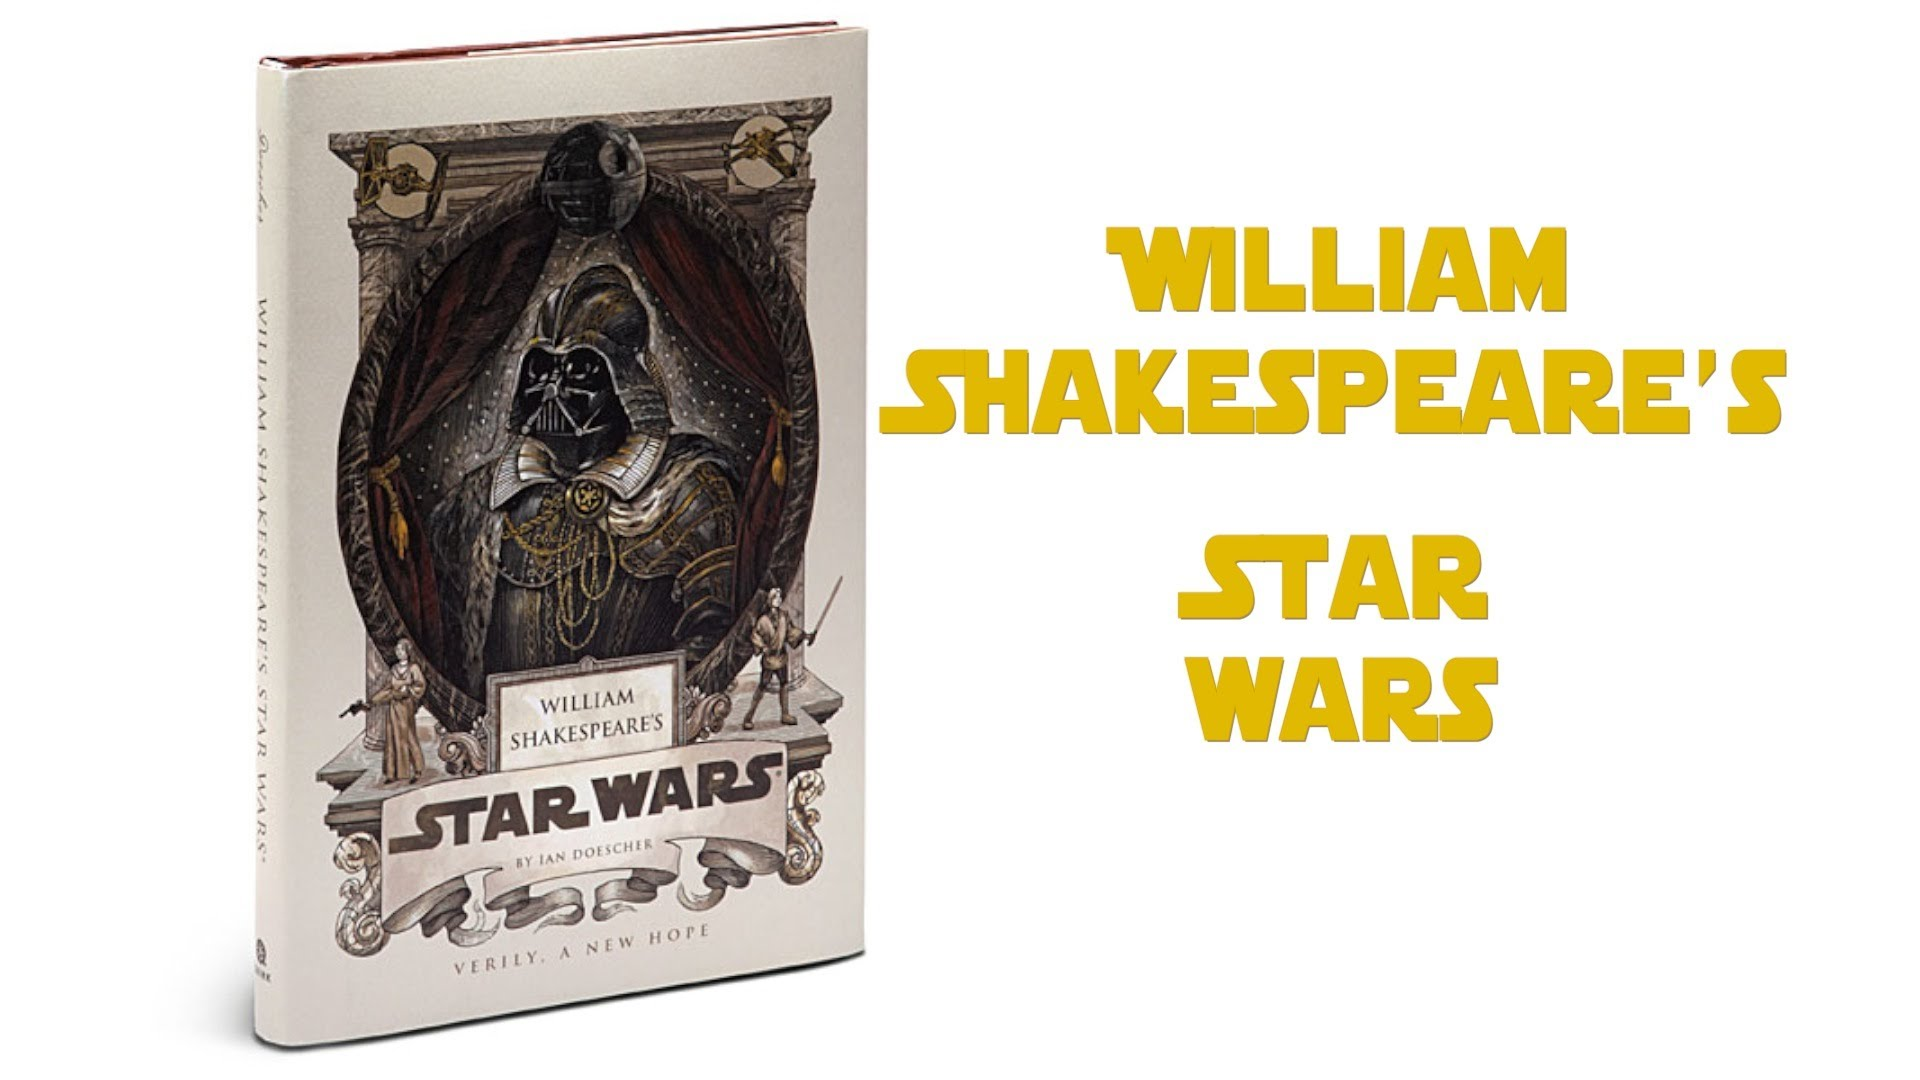 May The Force Be With Thou Star Wars Gets Shakespeared